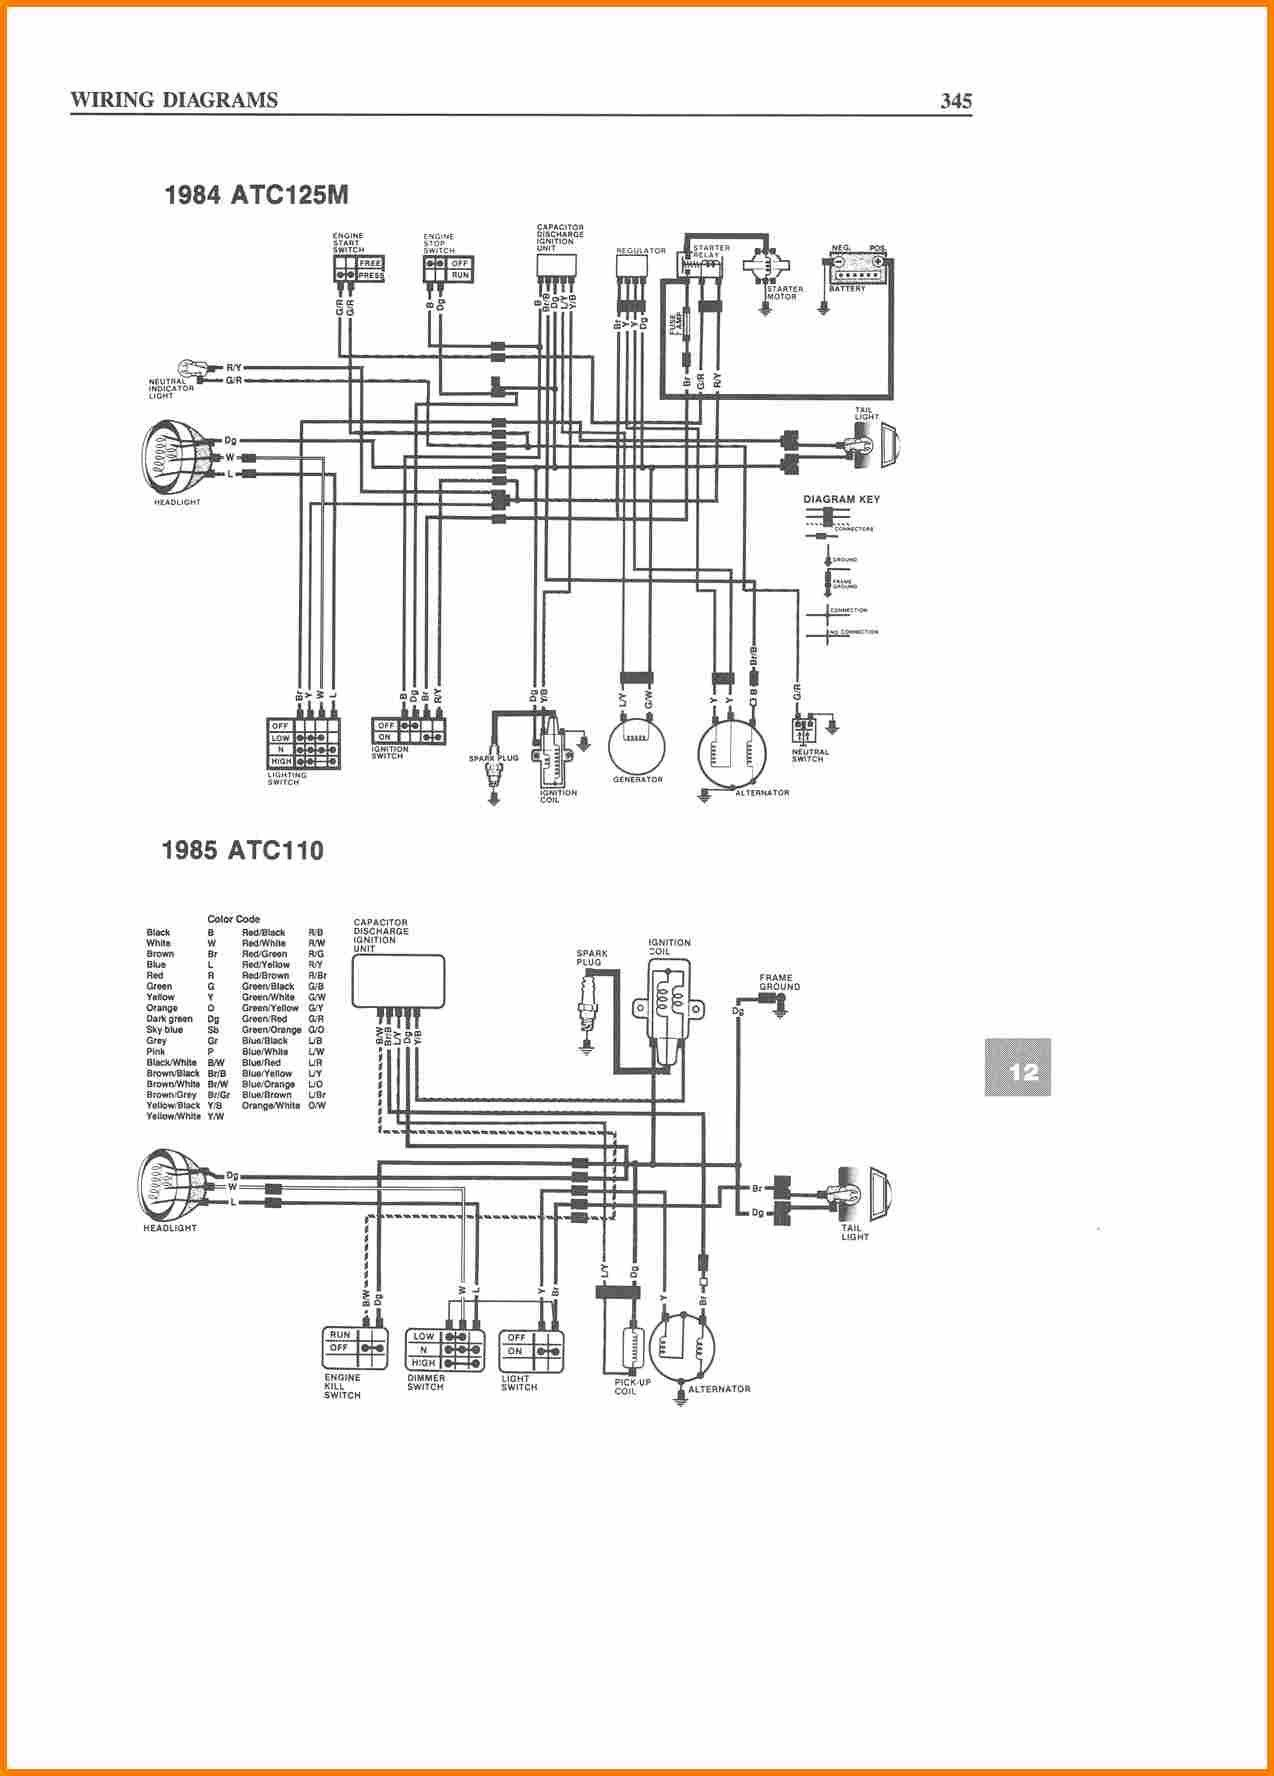 xtreme 90cc atv wiring diagram wiring diagram centre extreme atv wiring harness wiring diagram [ 1274 x 1776 Pixel ]